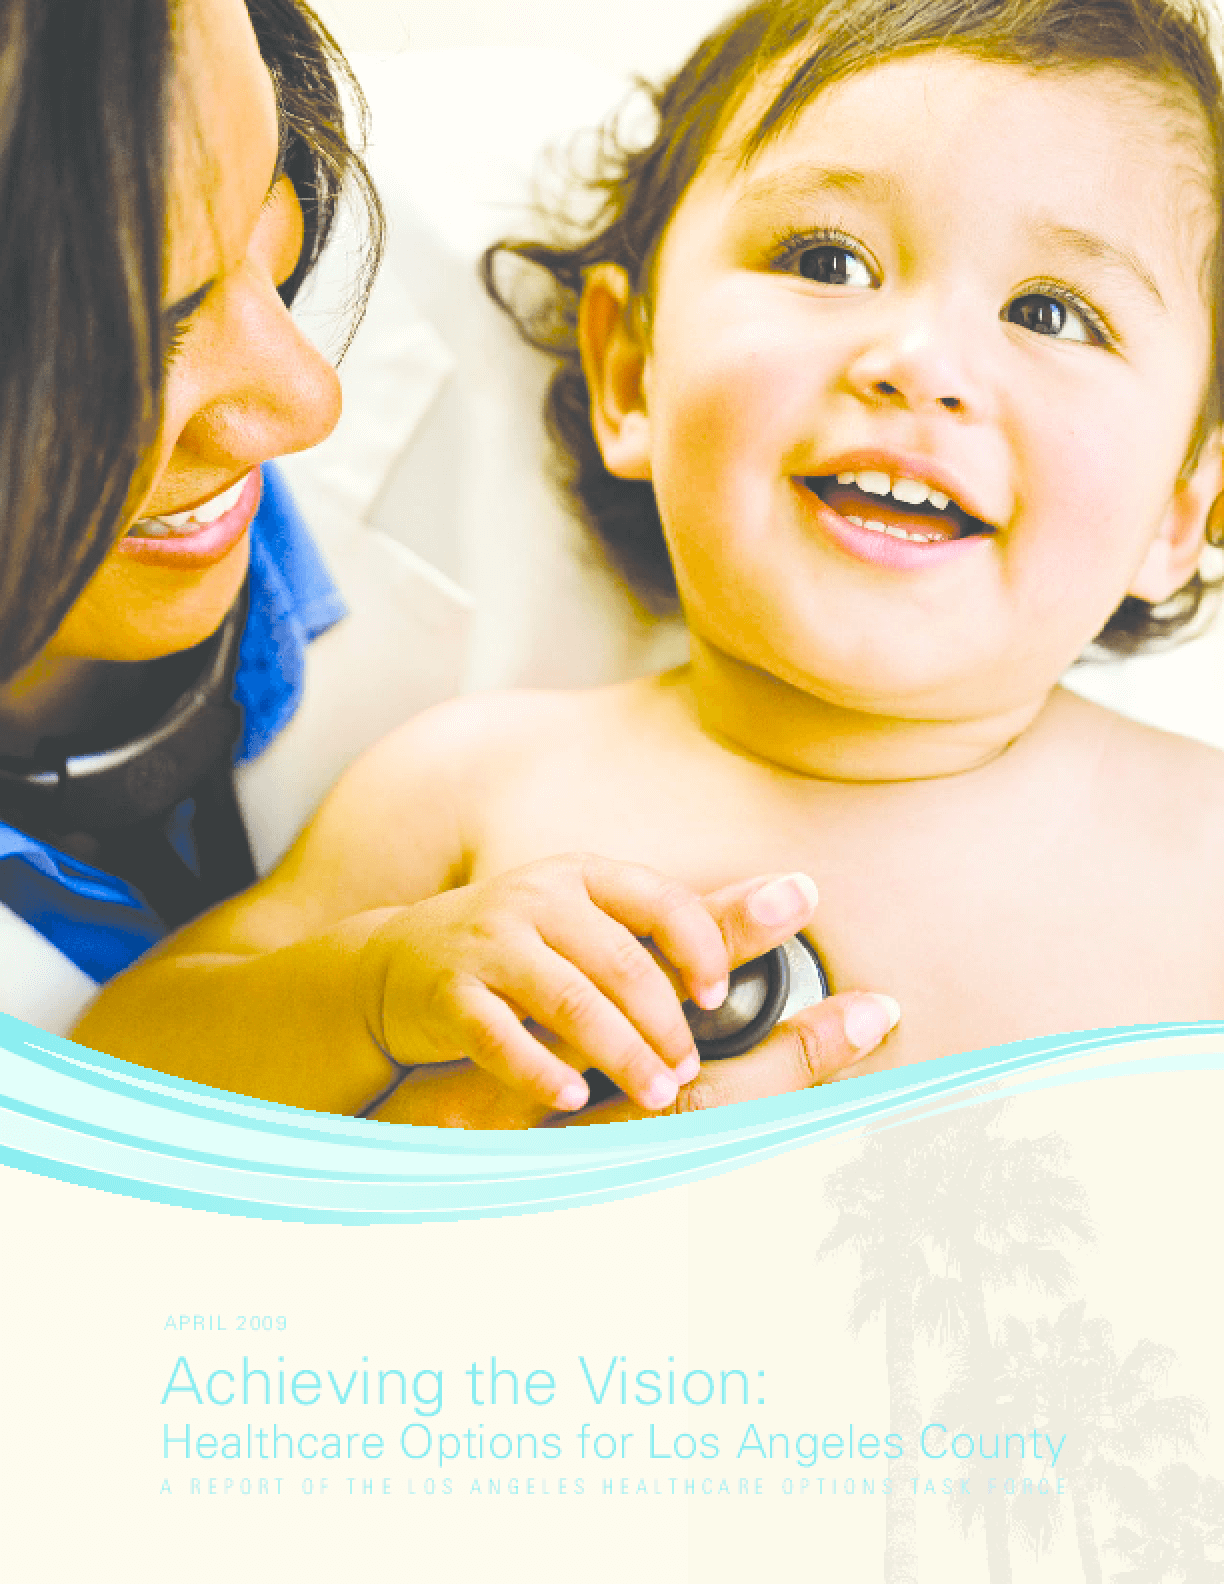 Achieving the Vision: Healthcare Options for Los Angeles County